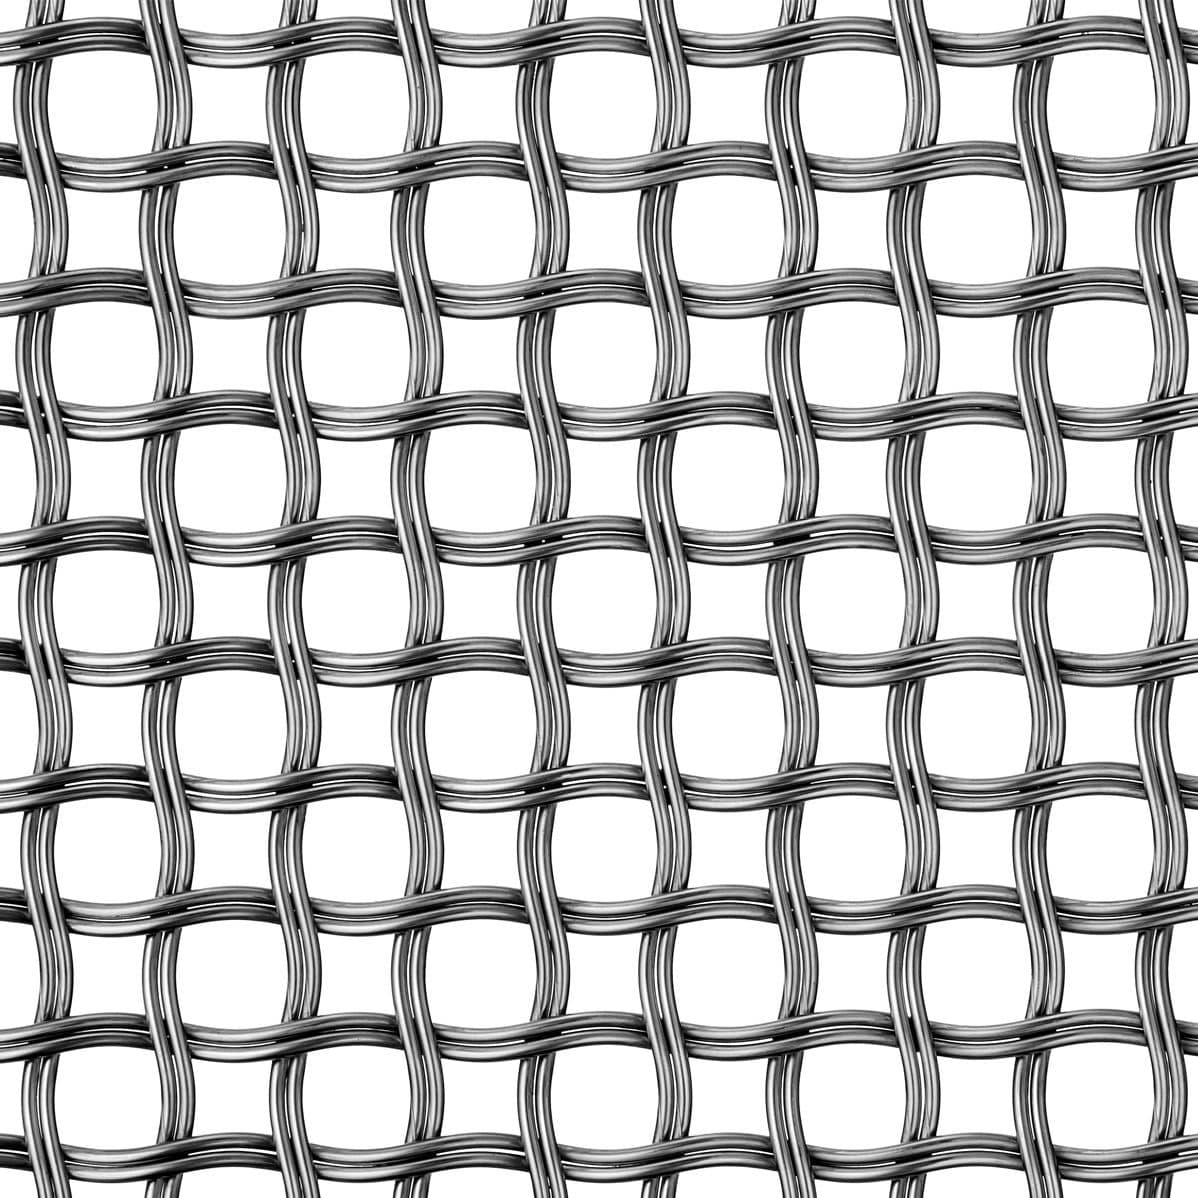 Partition wall woven wire fabric / railing / for walls / stainless ...